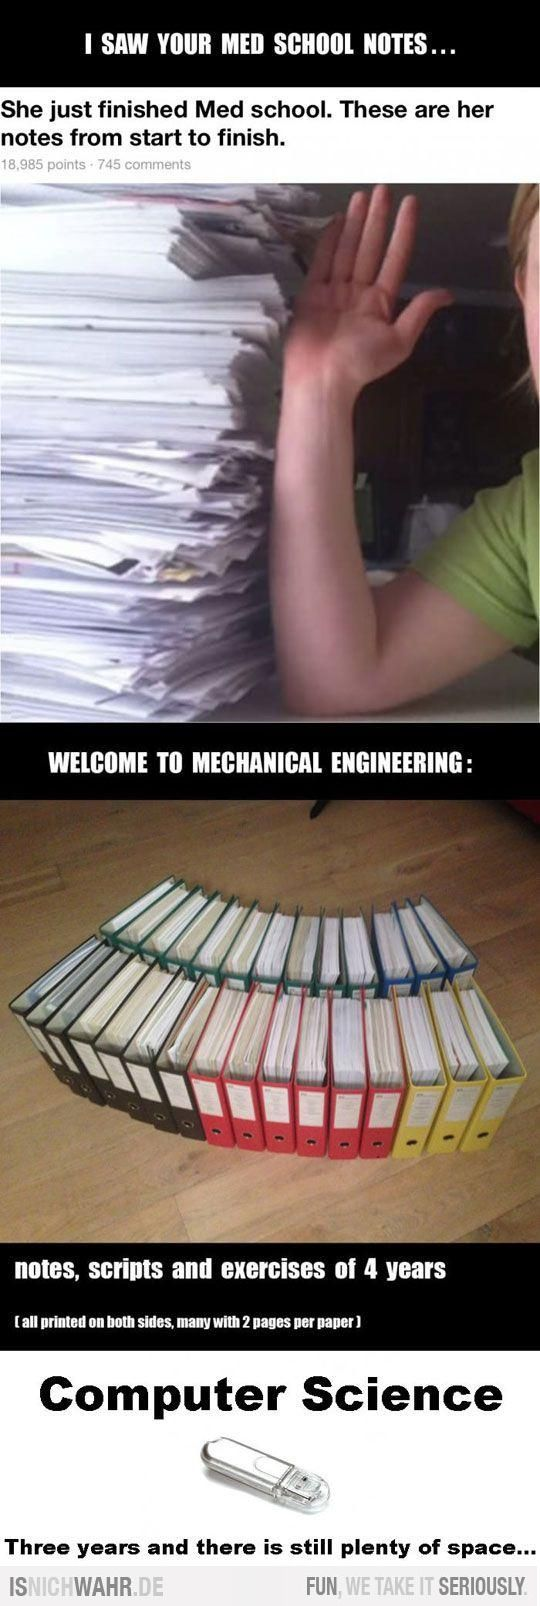 Crying because I'm a mechanical engineering major and this is my future